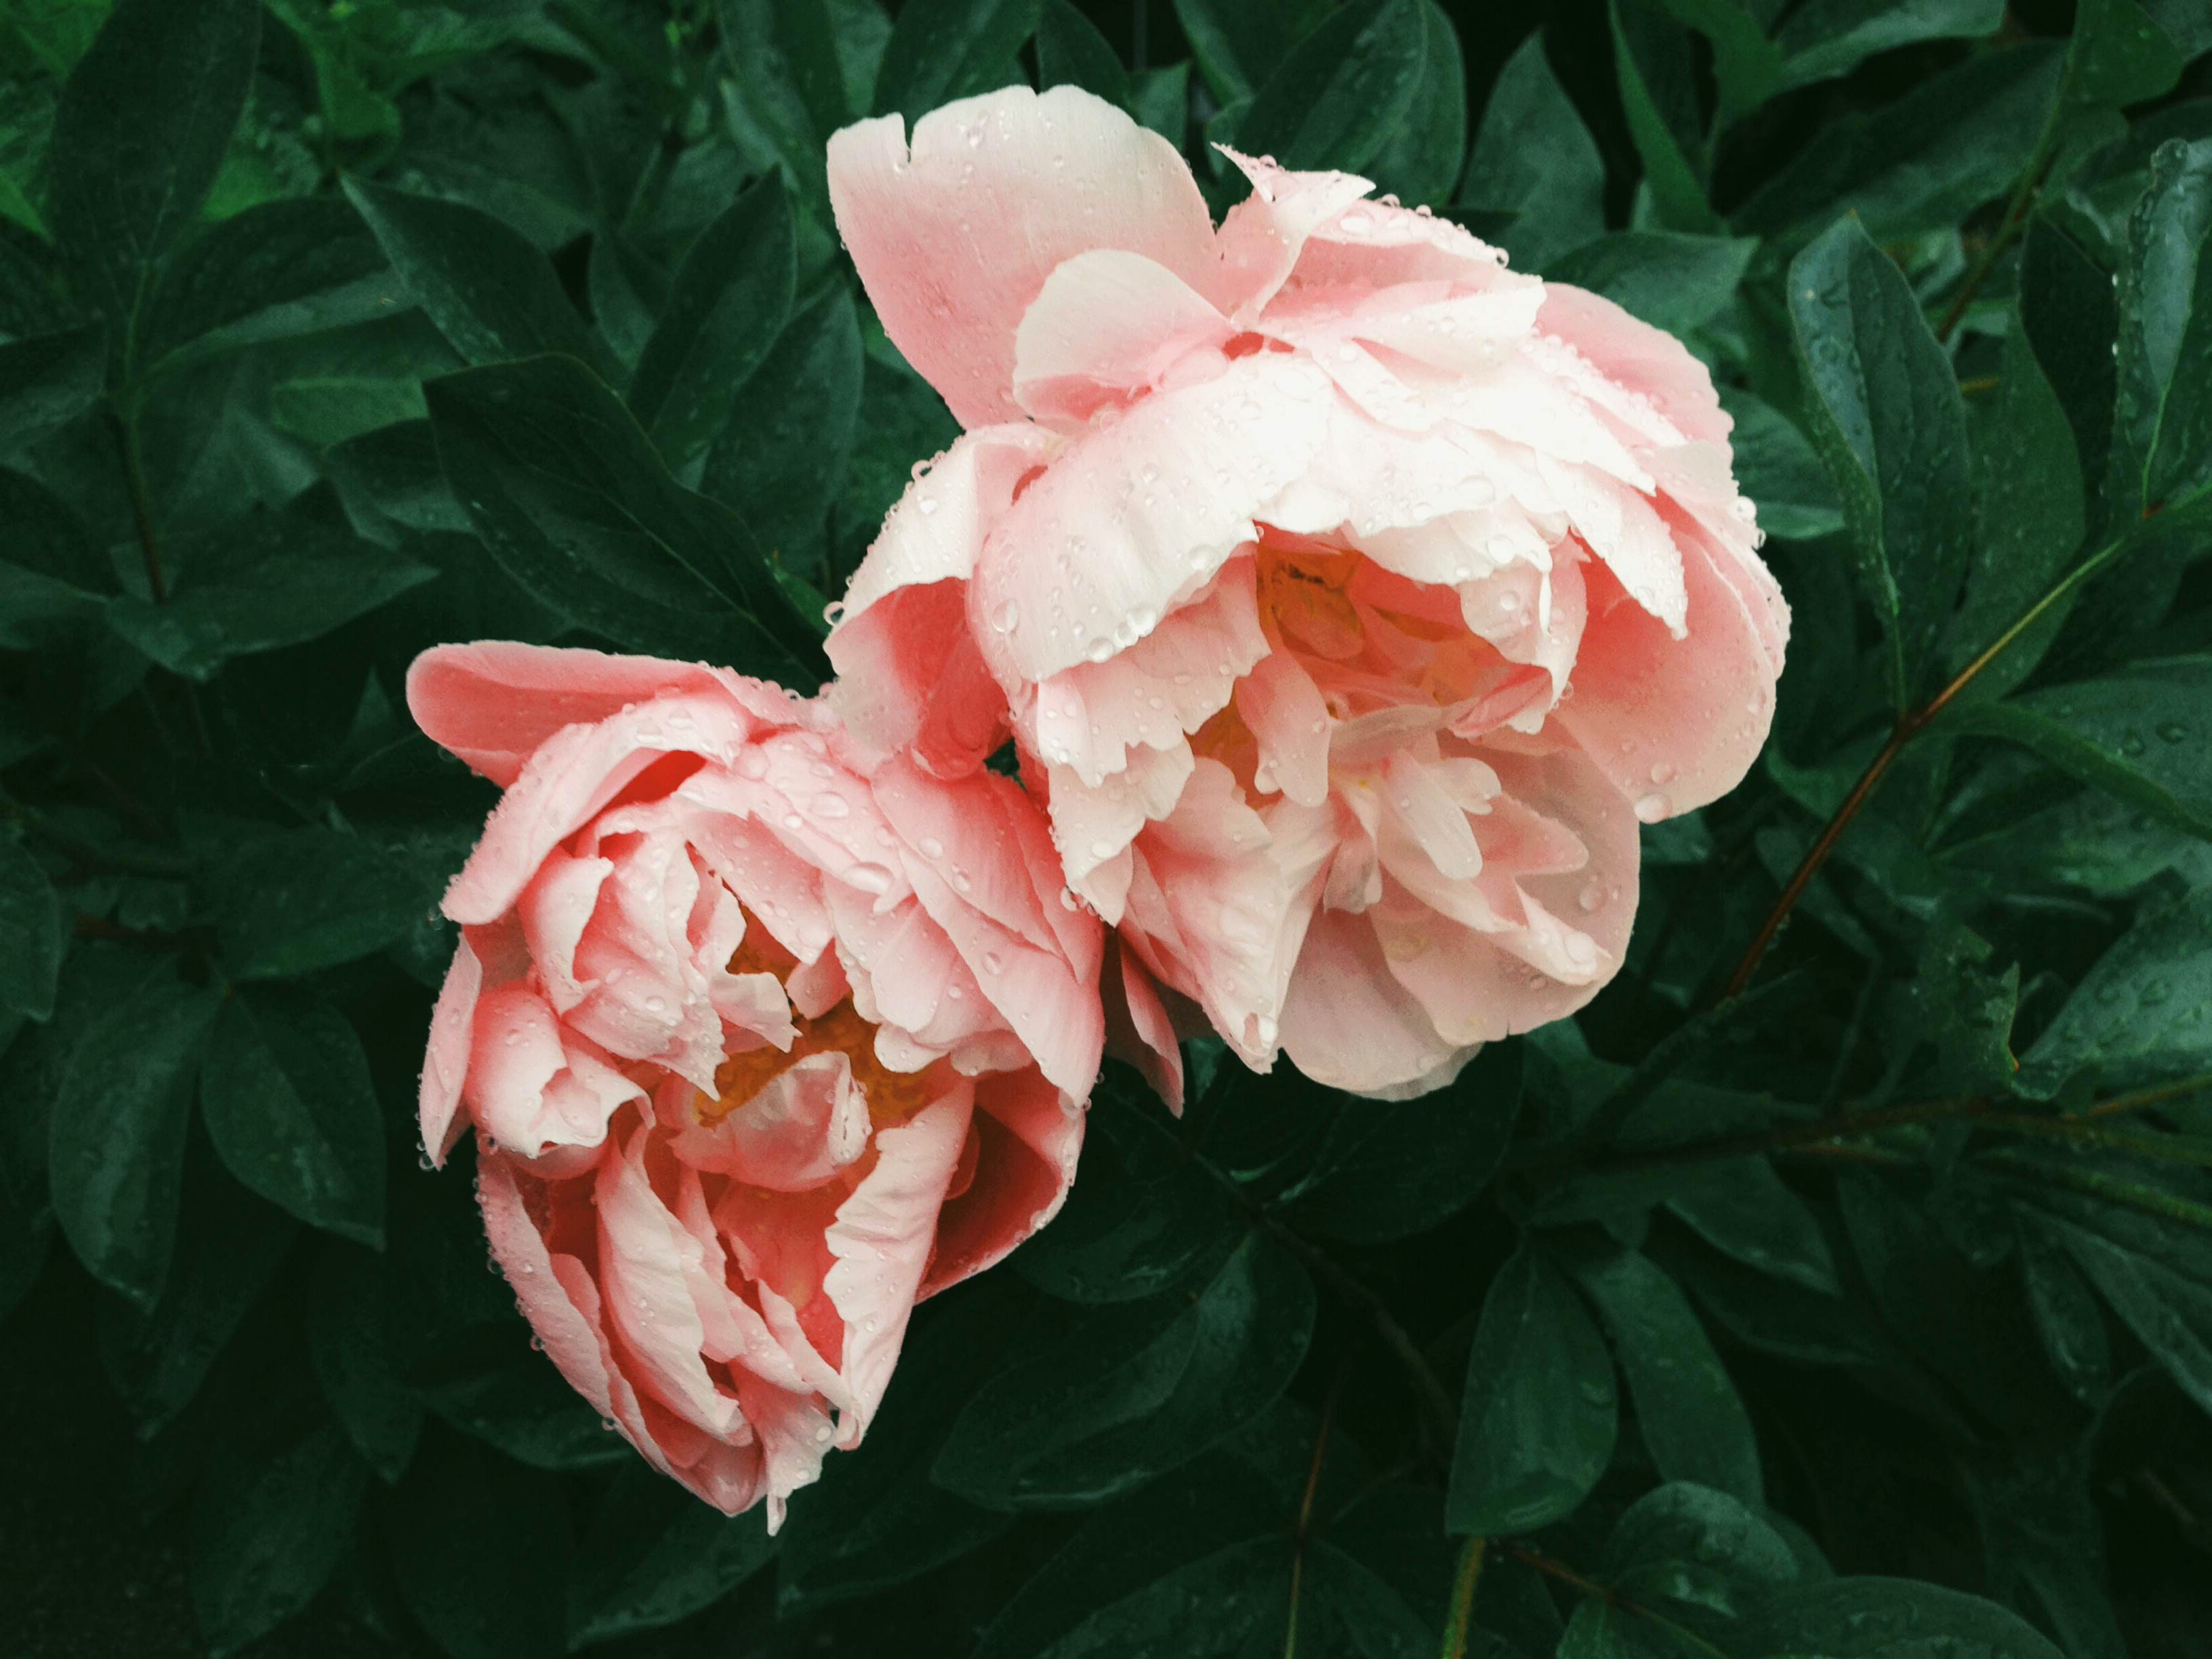 Two delicate pink peonies covered in water droplets